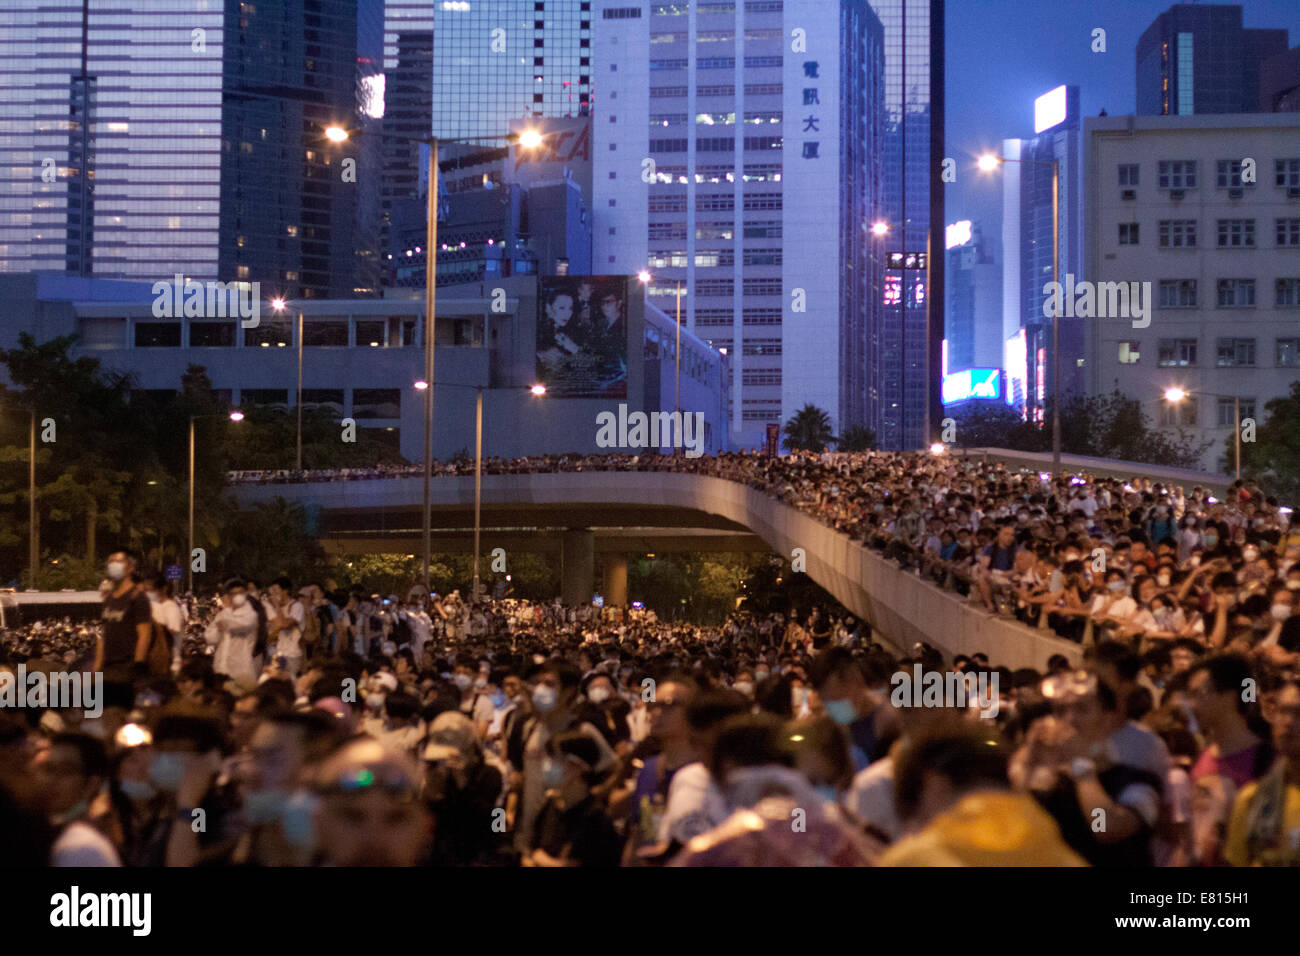 Hong Kong. 28th Sep, 2014. Crowds of people at the Occupy Central protests, Hong Kong, China.   Protests against Stock Photo